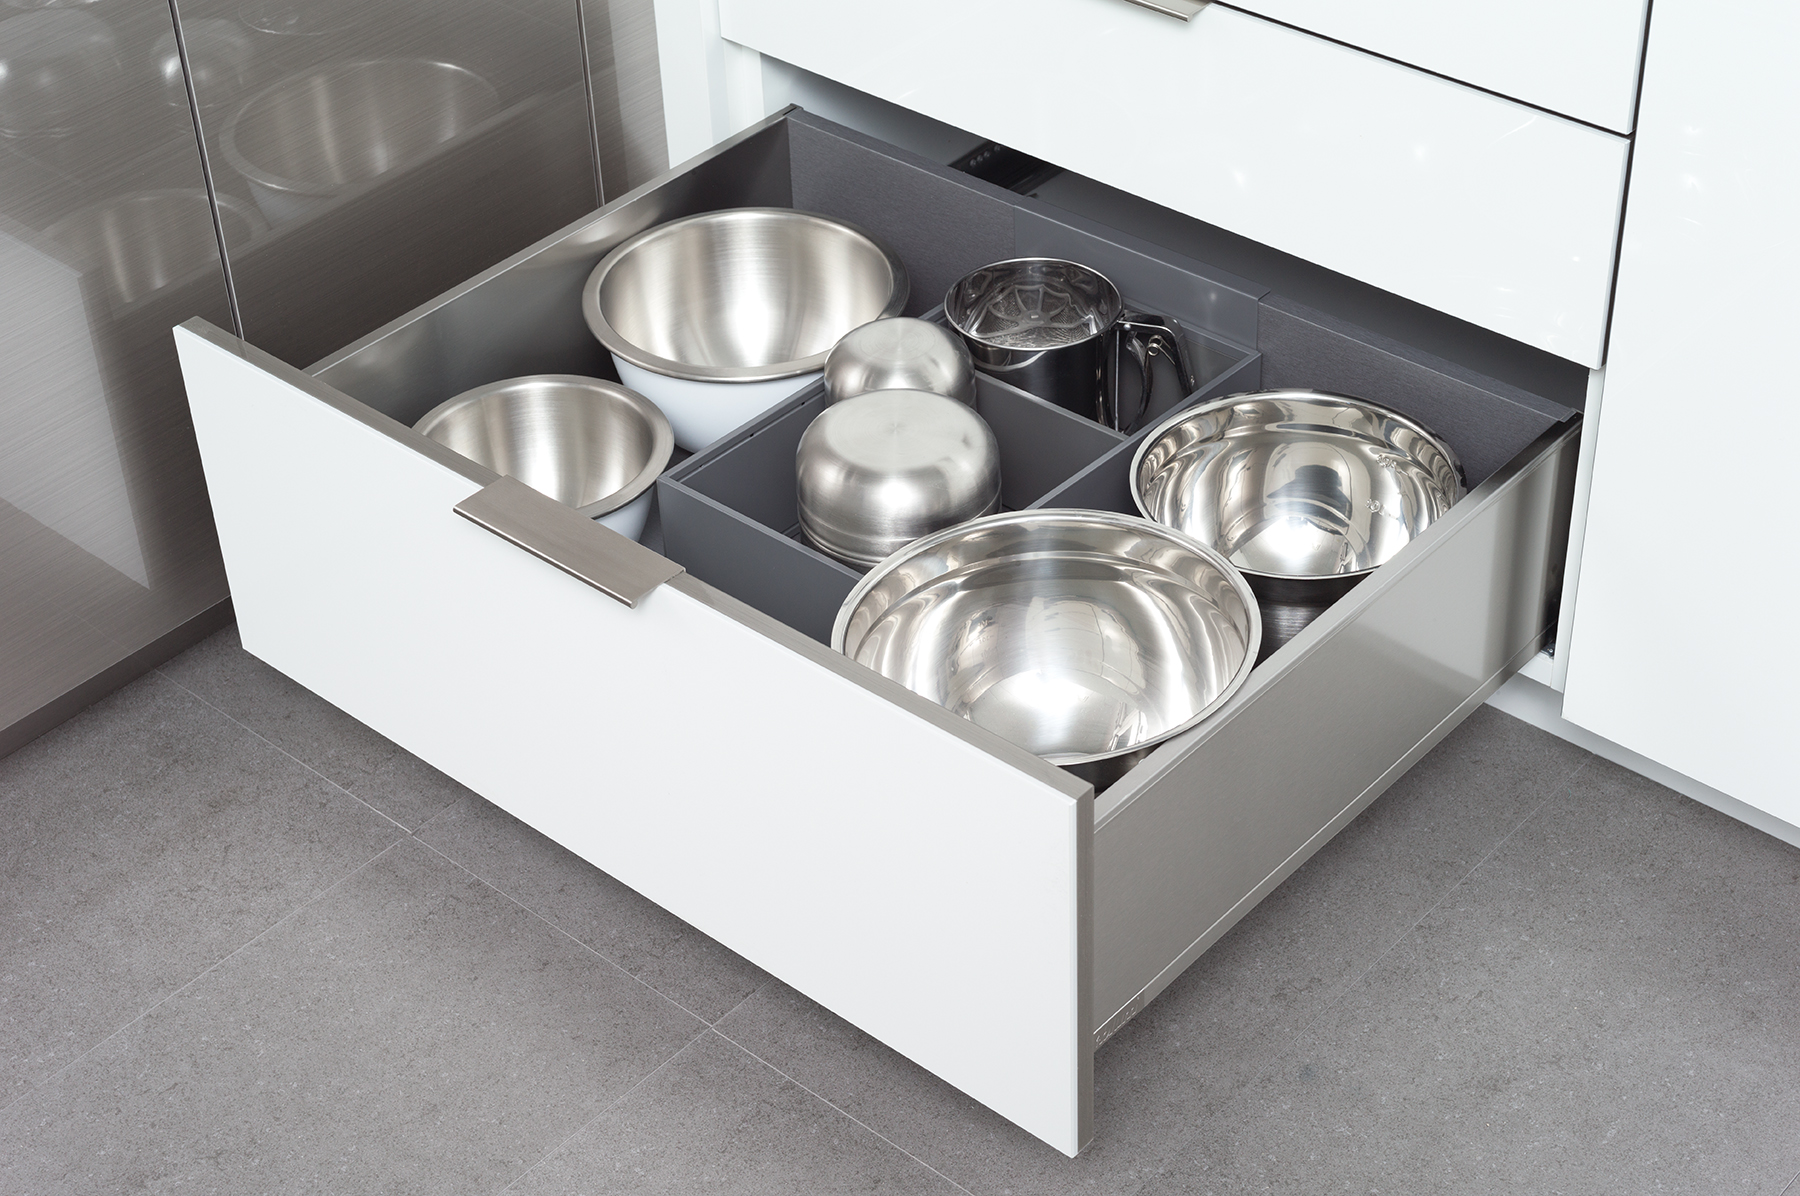 Deep Drawer Organizer for Stainless Steel Drawers